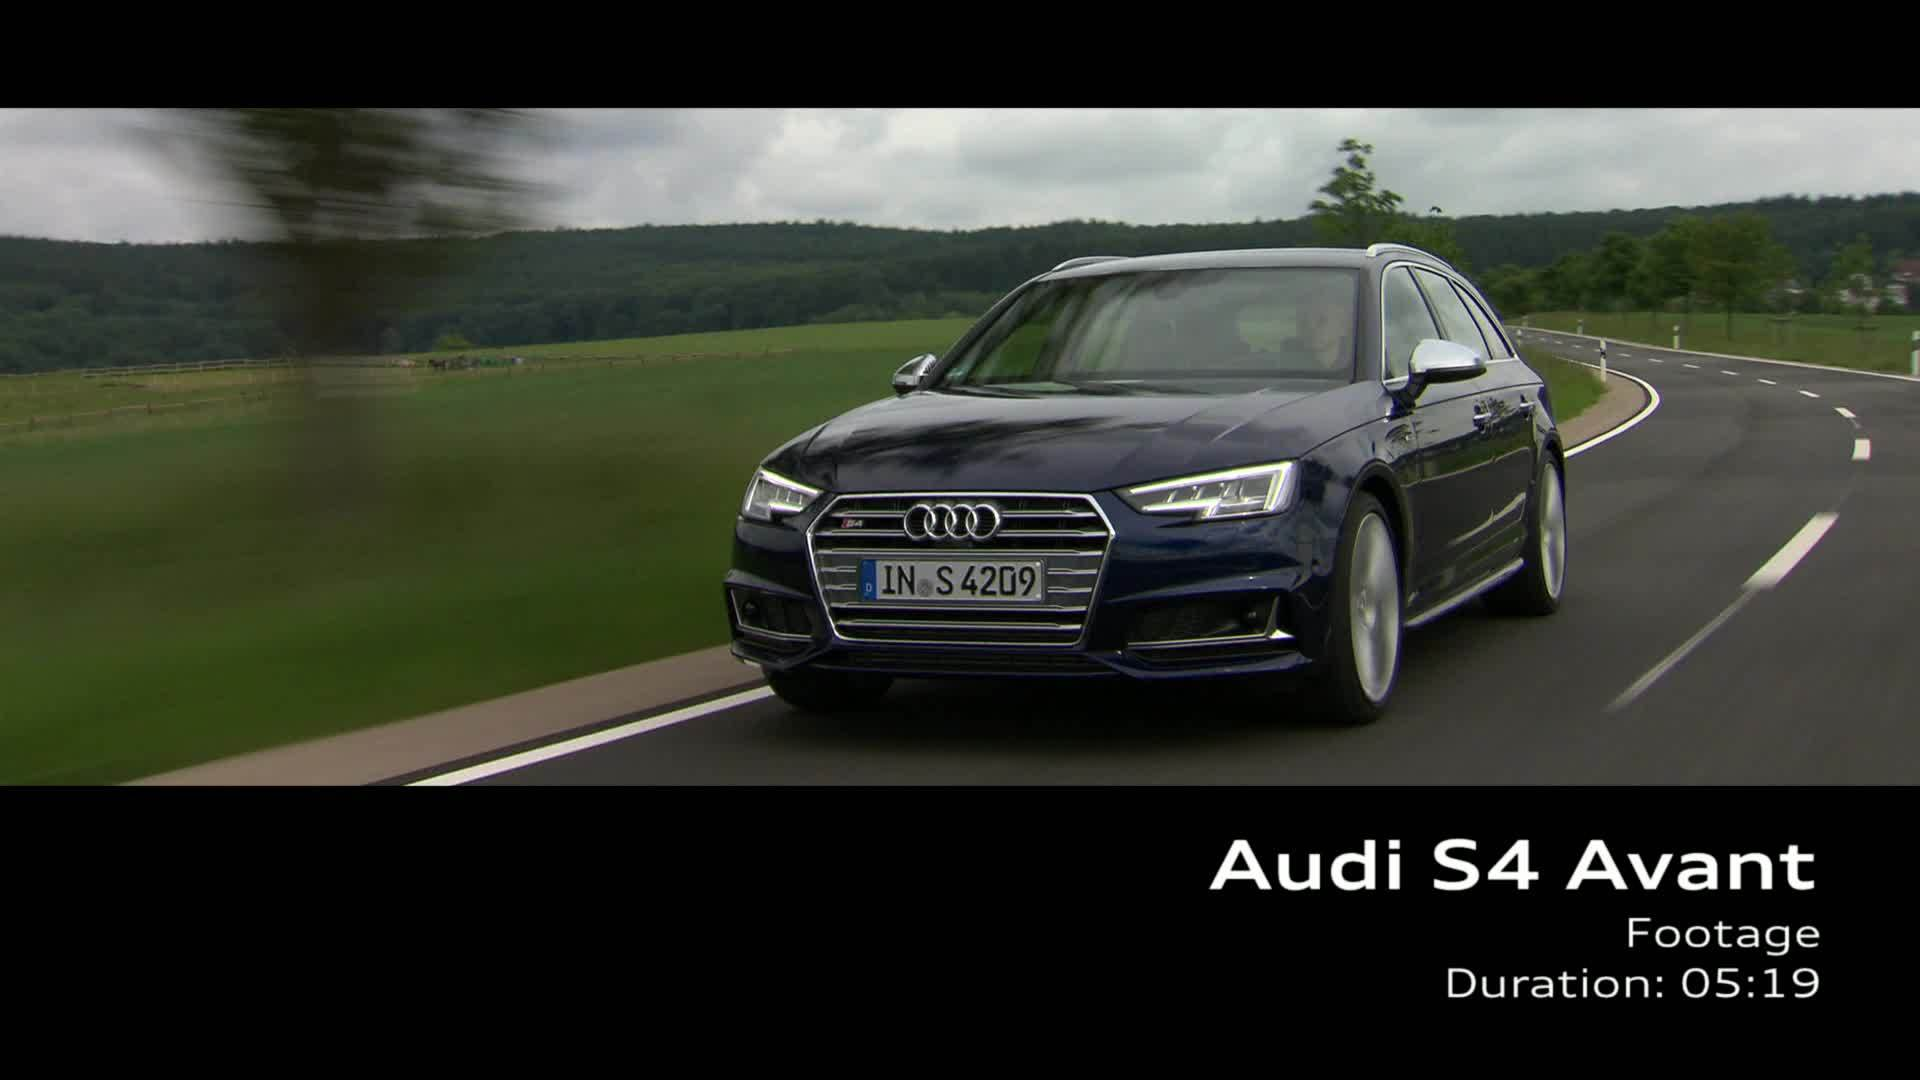 Audi S4 Avant - Footage on Location